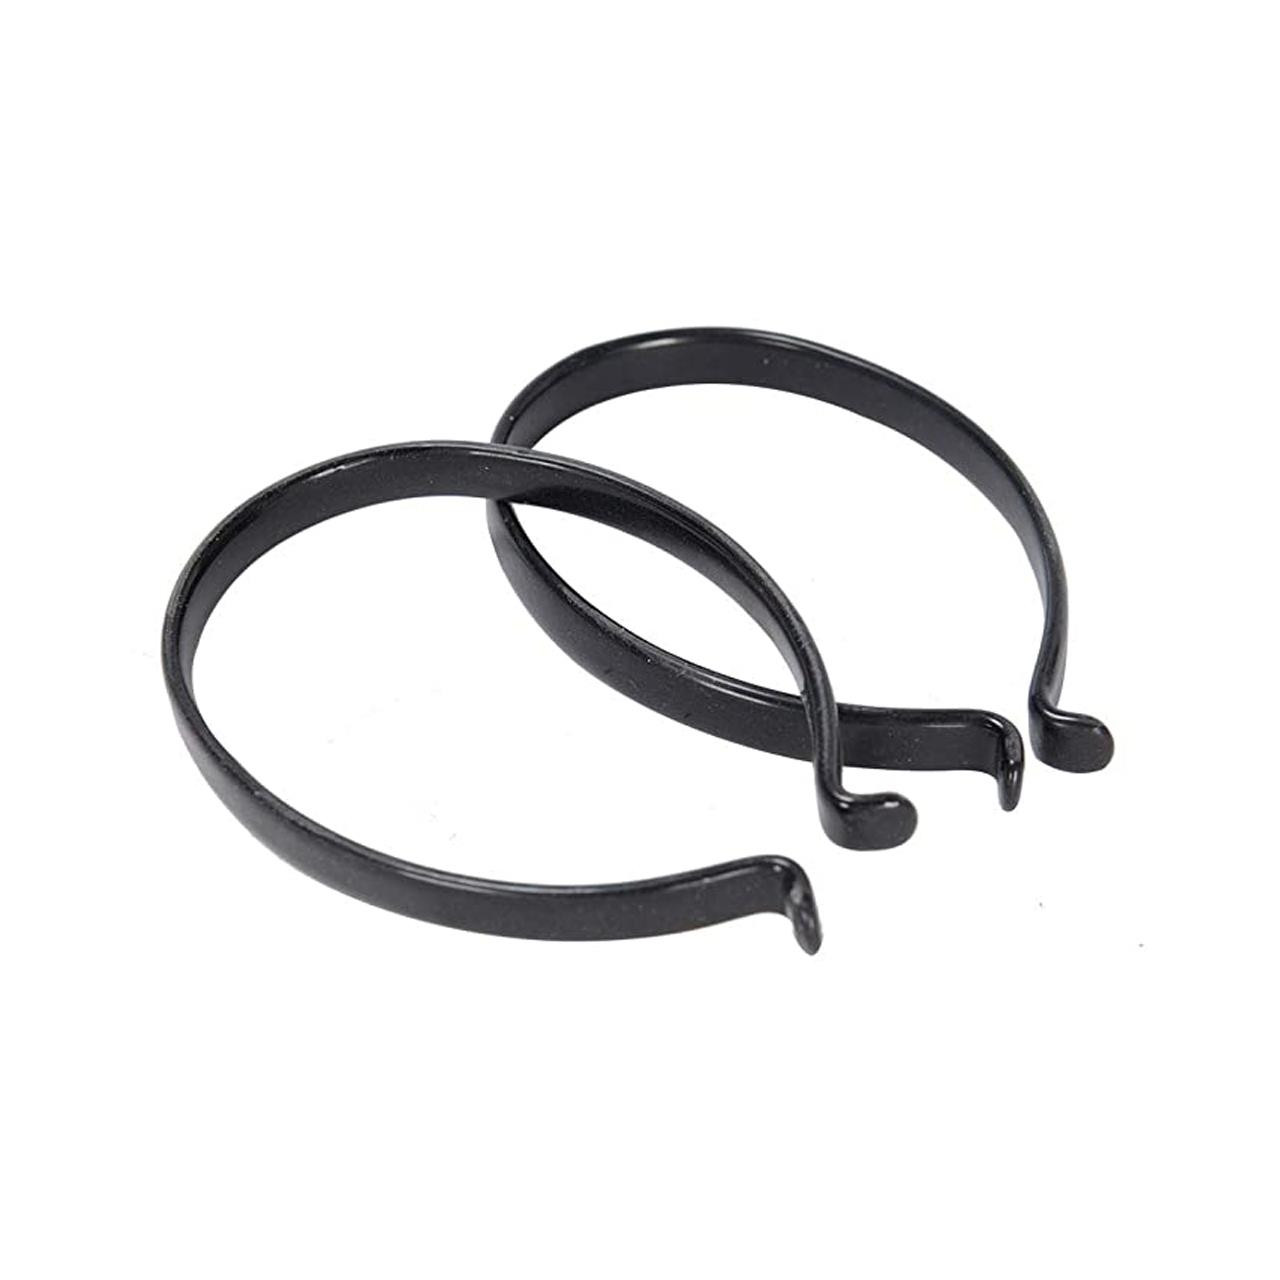 Cycle Trouser Clips (Black Steel)